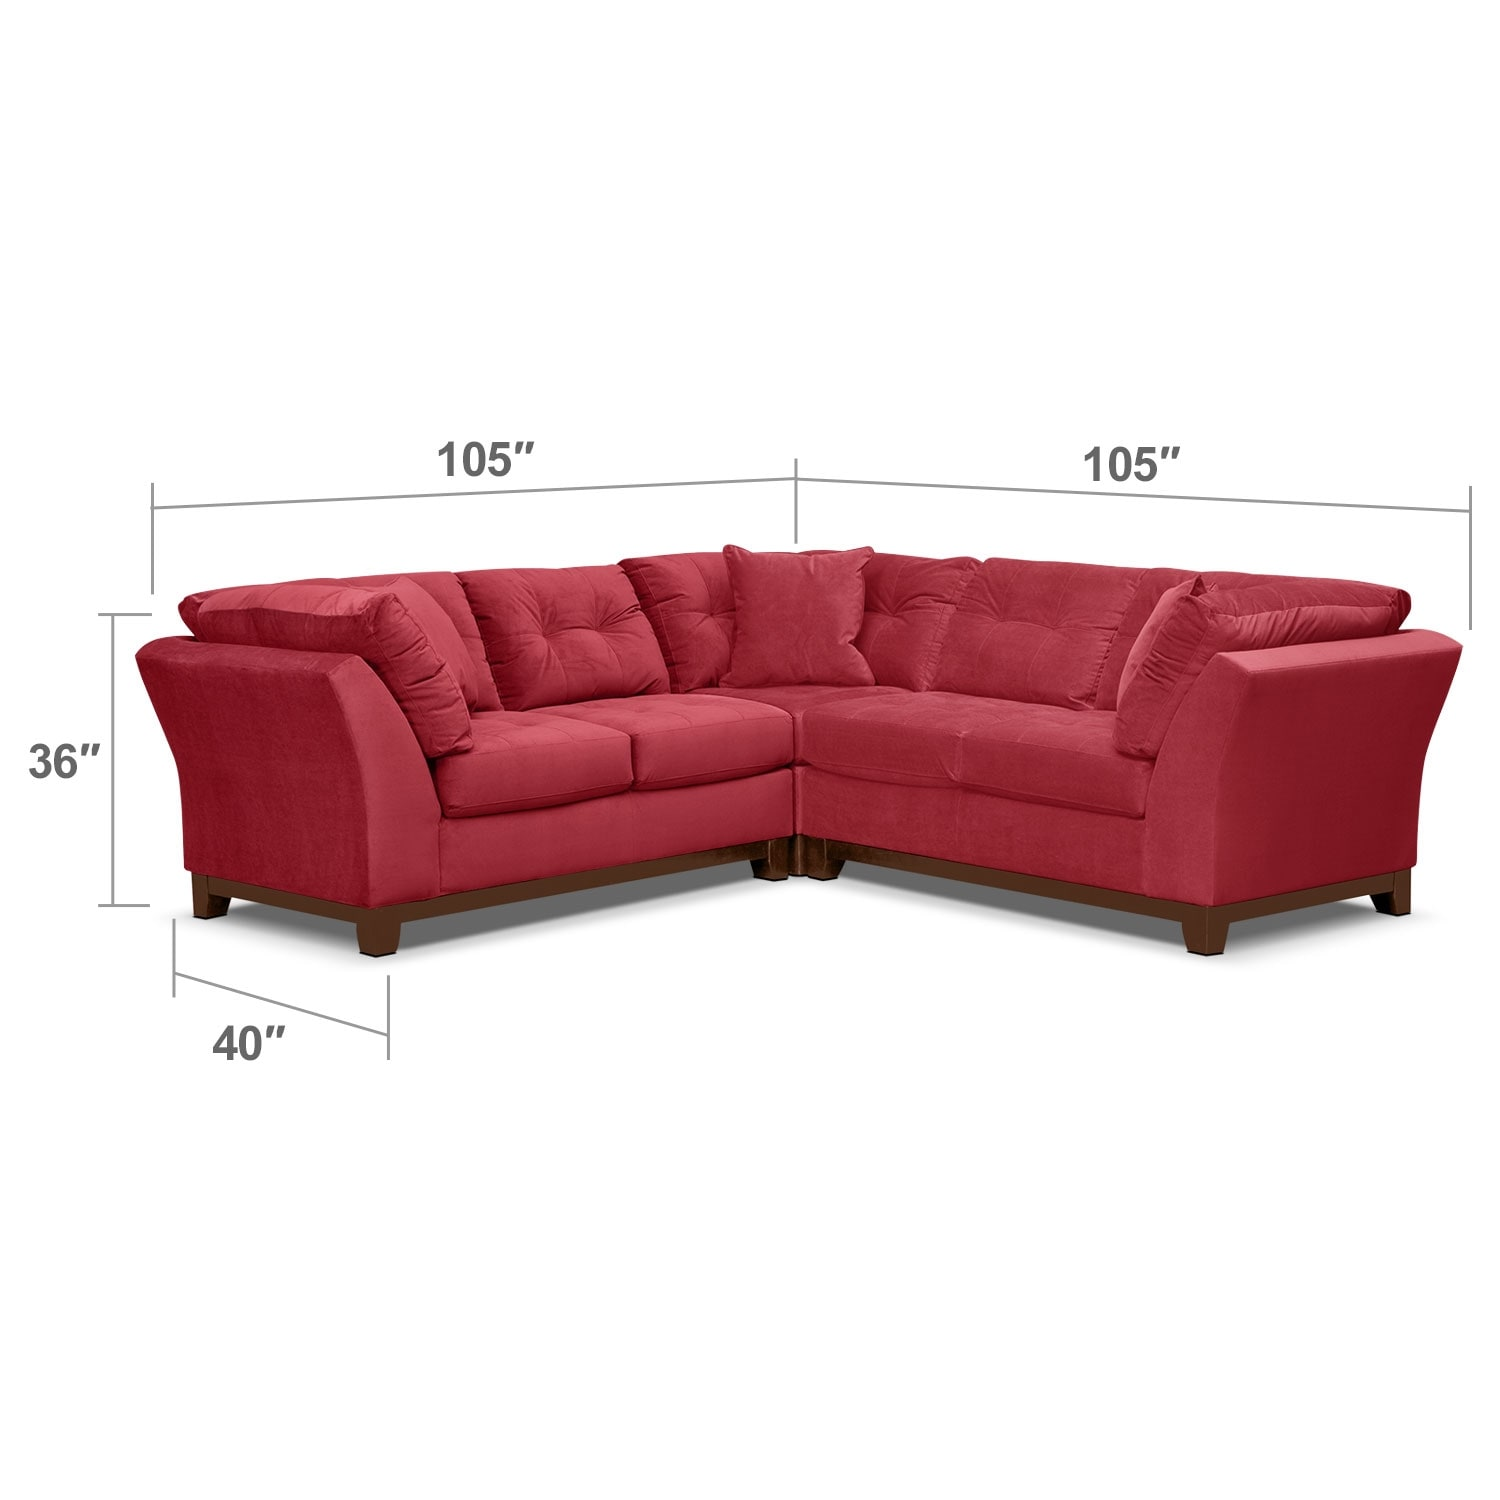 Living Room Furniture - Solace Poppy II 3 Pc. Sectional (Alternate)